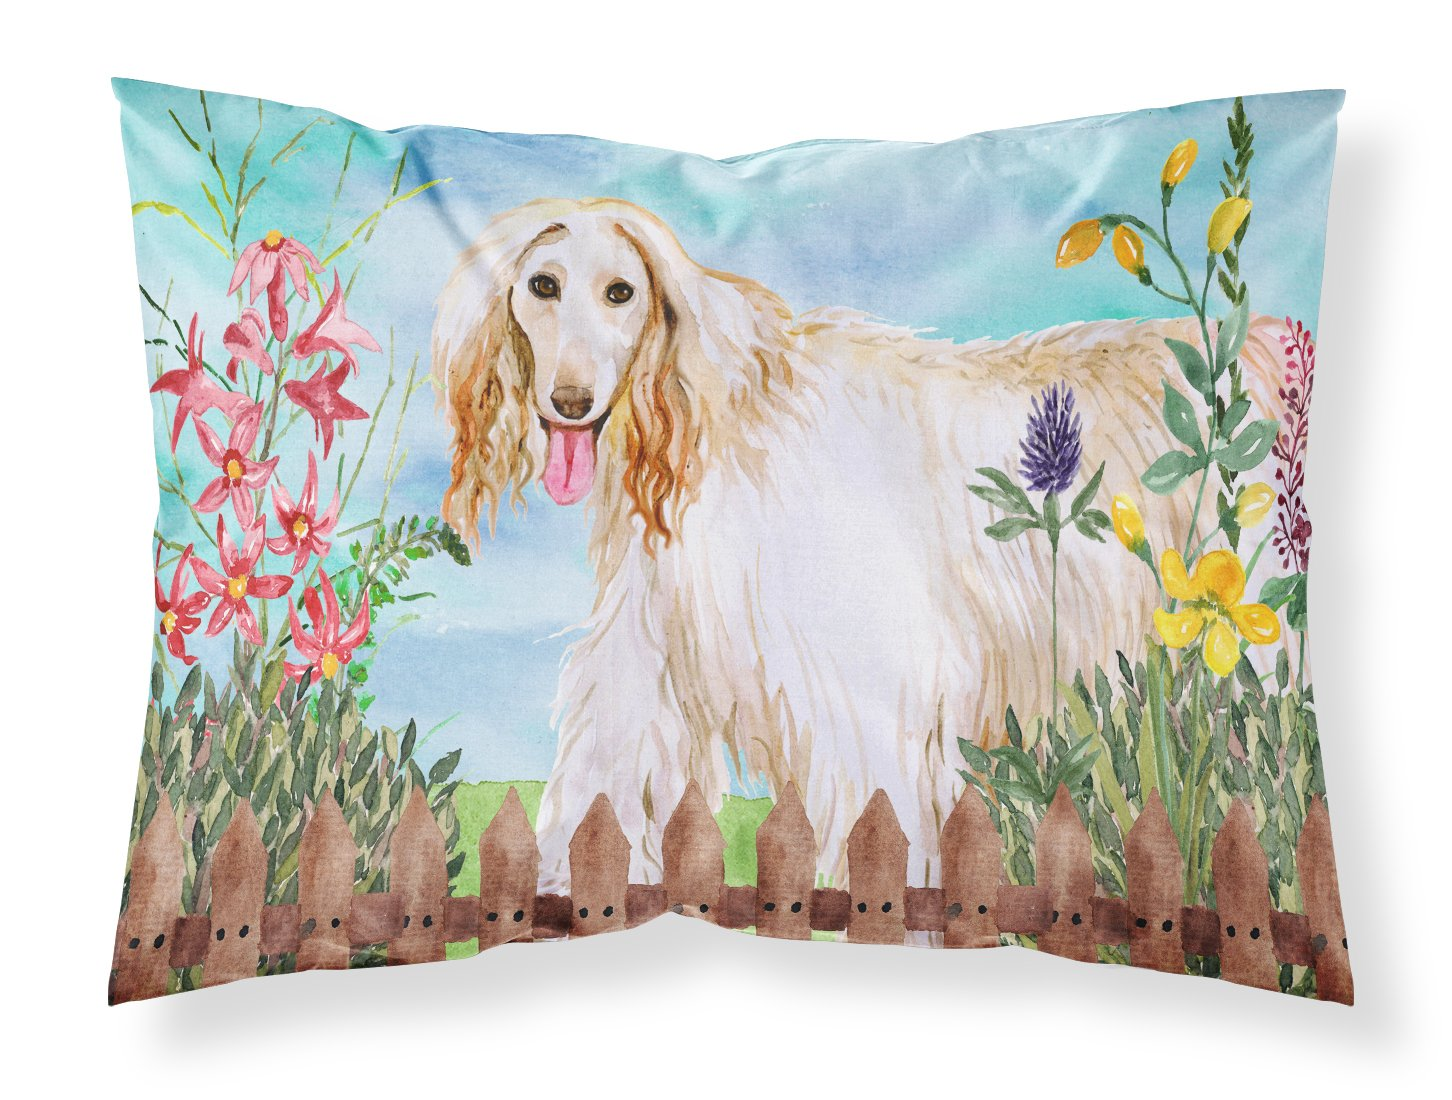 Carolines Treasures Afghan Hound Spring Pillowcase Standard Multicolor Throw Pillow Covers Decorative Pillows Inserts Covers